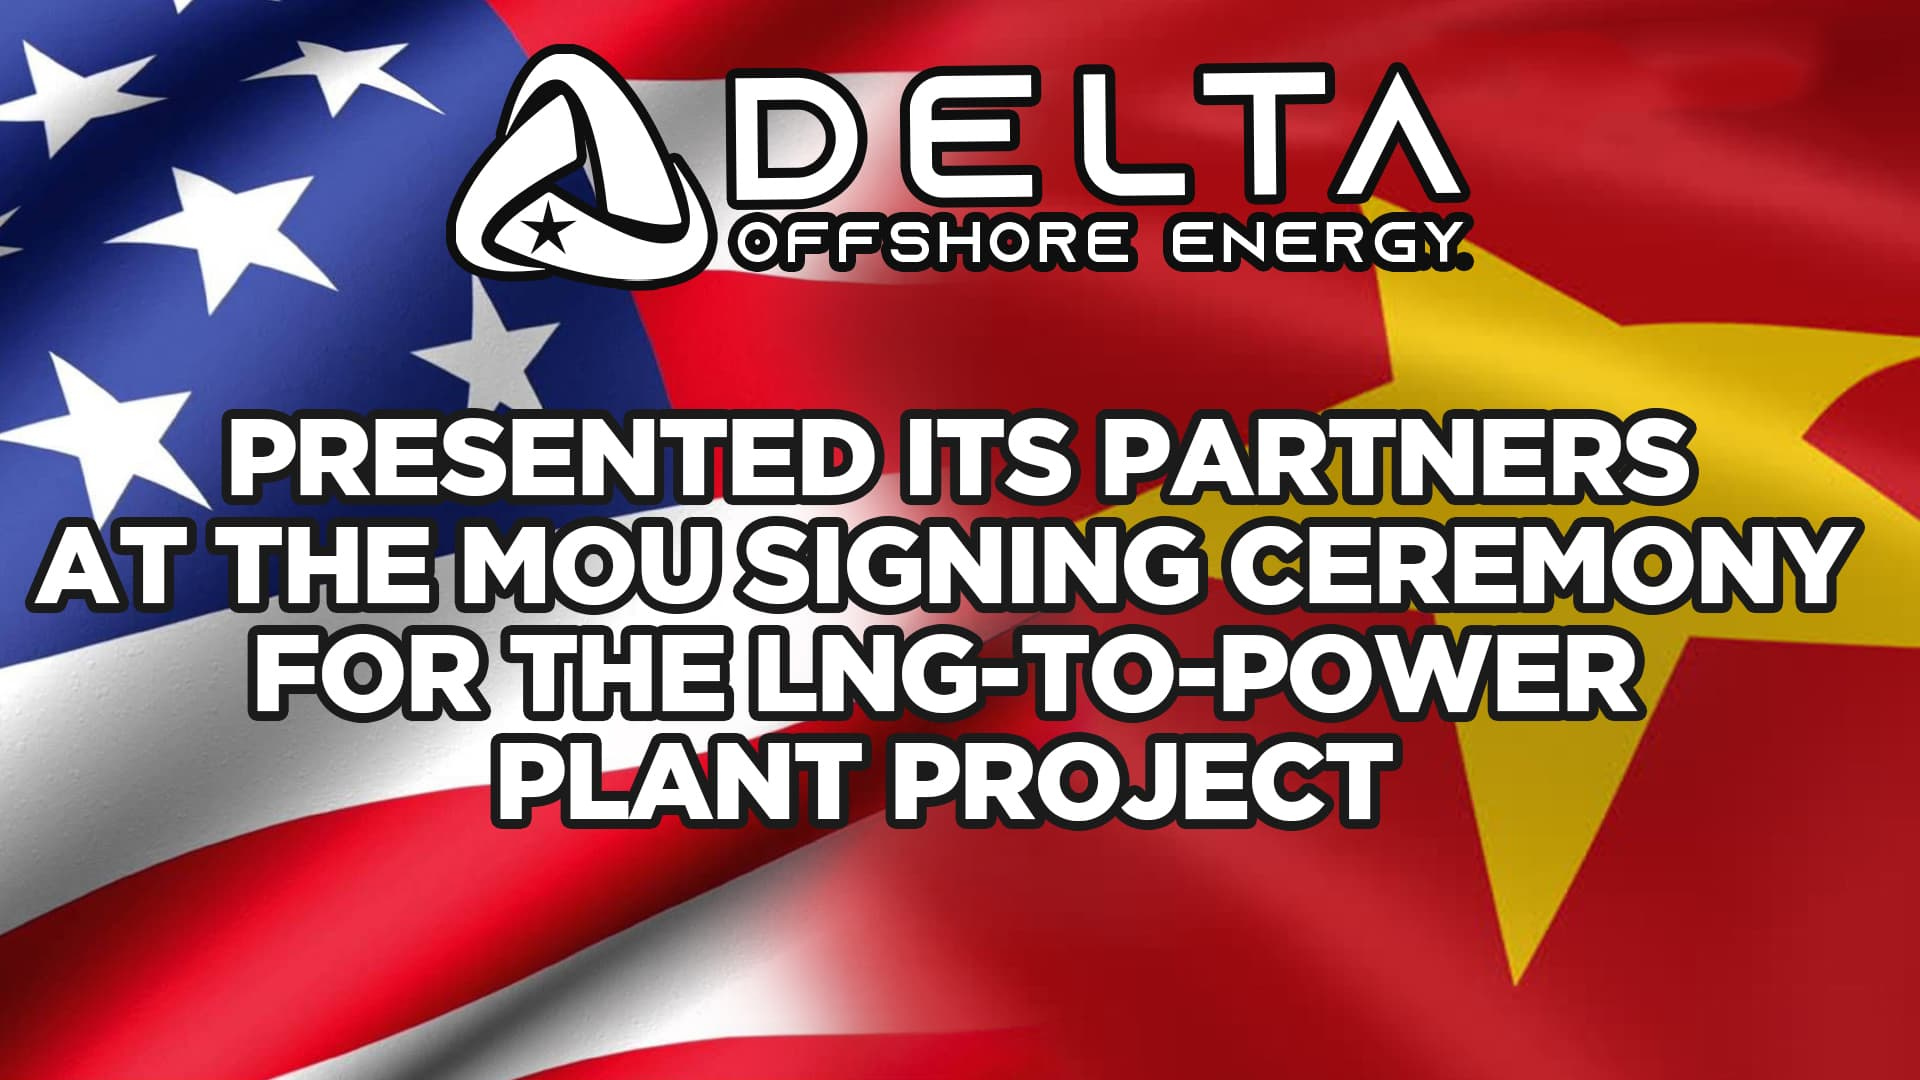 Continuing to support energy innovation, US Department of Commerce provides advocacy for Delta Offshore Energy Project